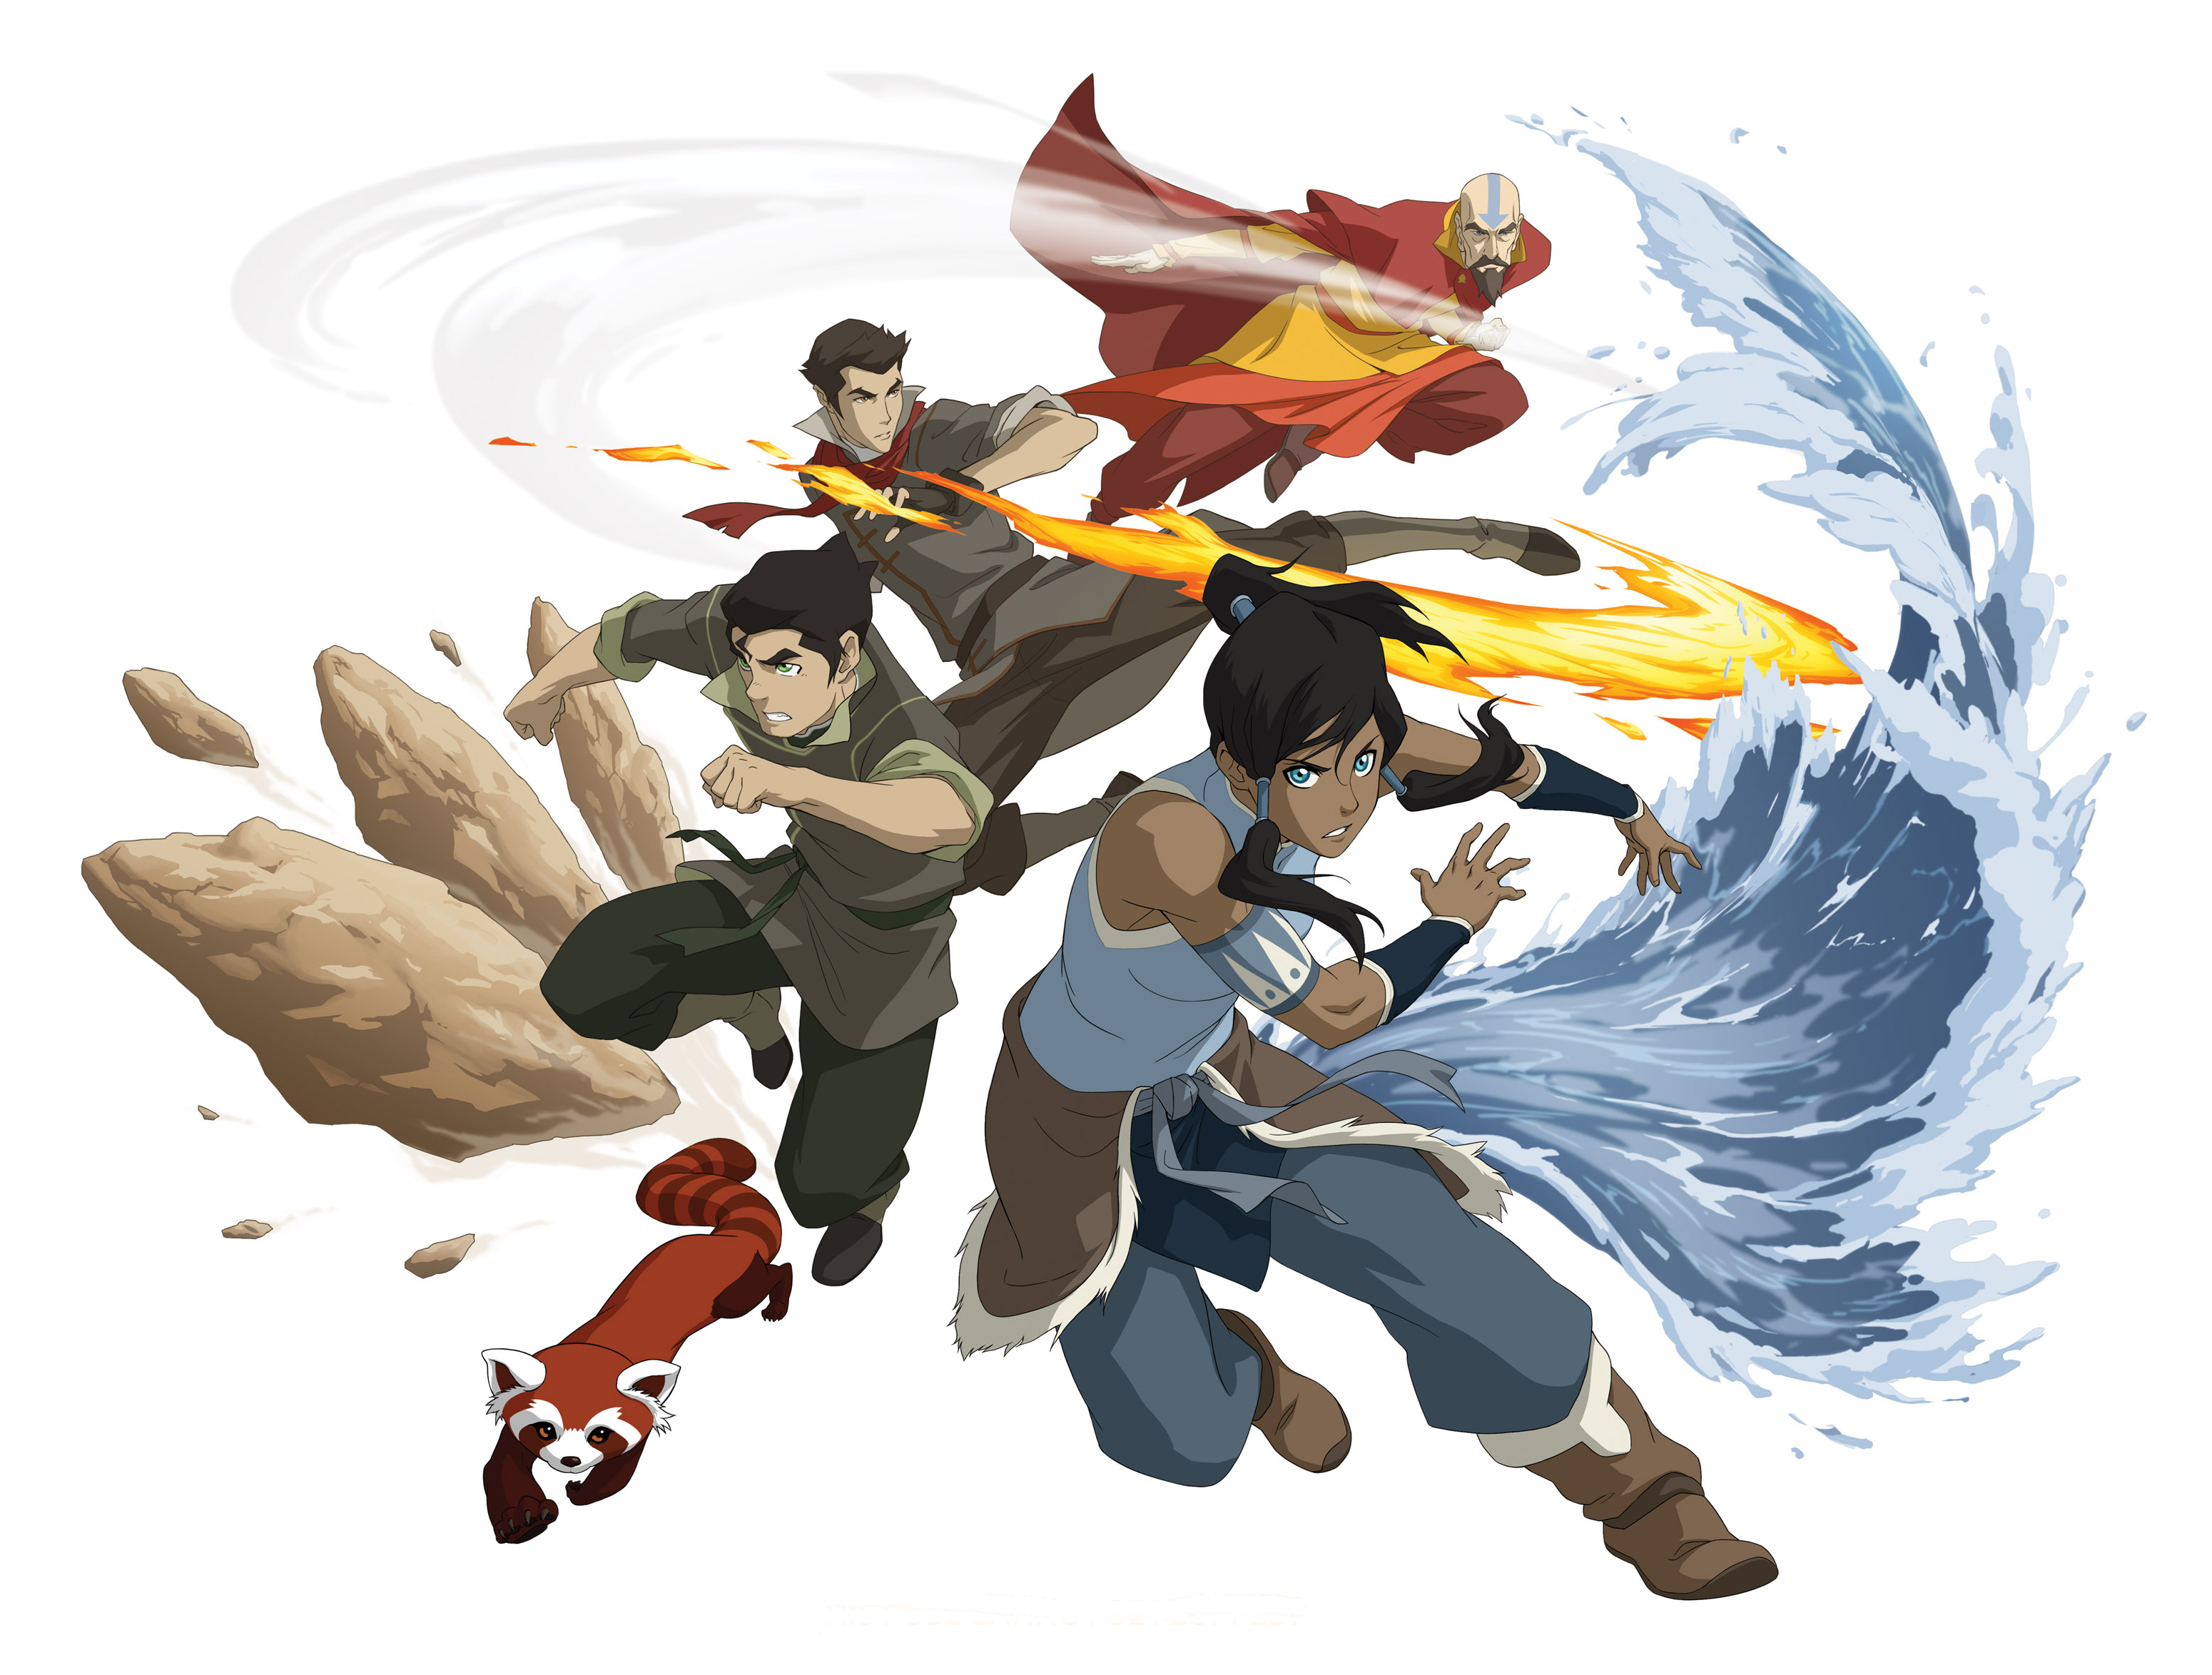 Korra: The Next Airbender!